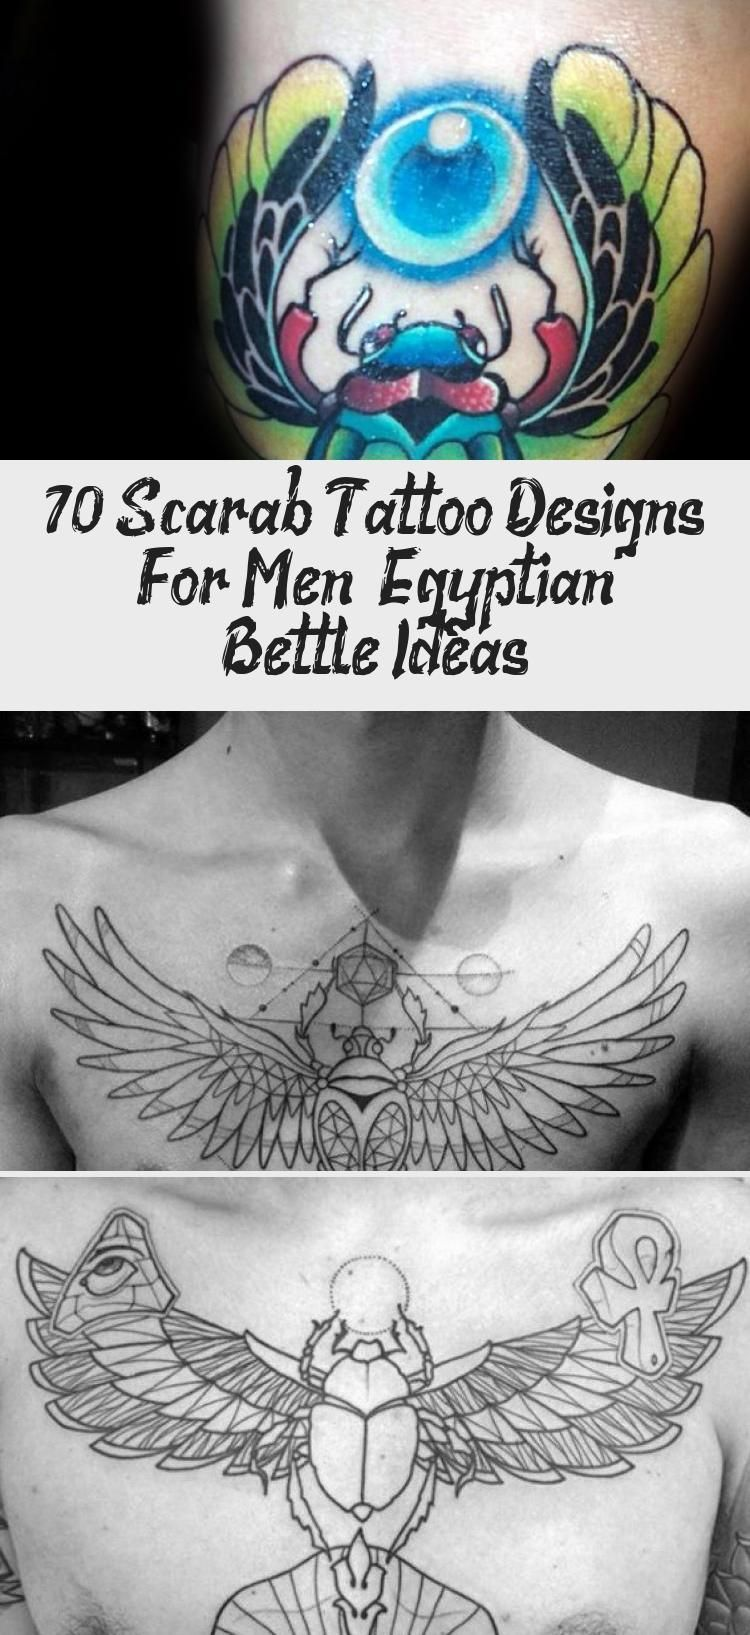 70 Scarab Tattoo Designs For Men – Egyptian Bettle Ideas - Tattoos and Body Art -  mens geometric scarab bettle with red ink pattern inner forearm tattoo #forearmtattoosCoverUp #fore - #angeltatto #Art #bettle #body #designs #egyptian #forearmtatto #ideas #matchingtatto #Men #necktatto #scarab #sistertatto #skulltatto #tattoart #tattovrouw #tattoo #tattoos